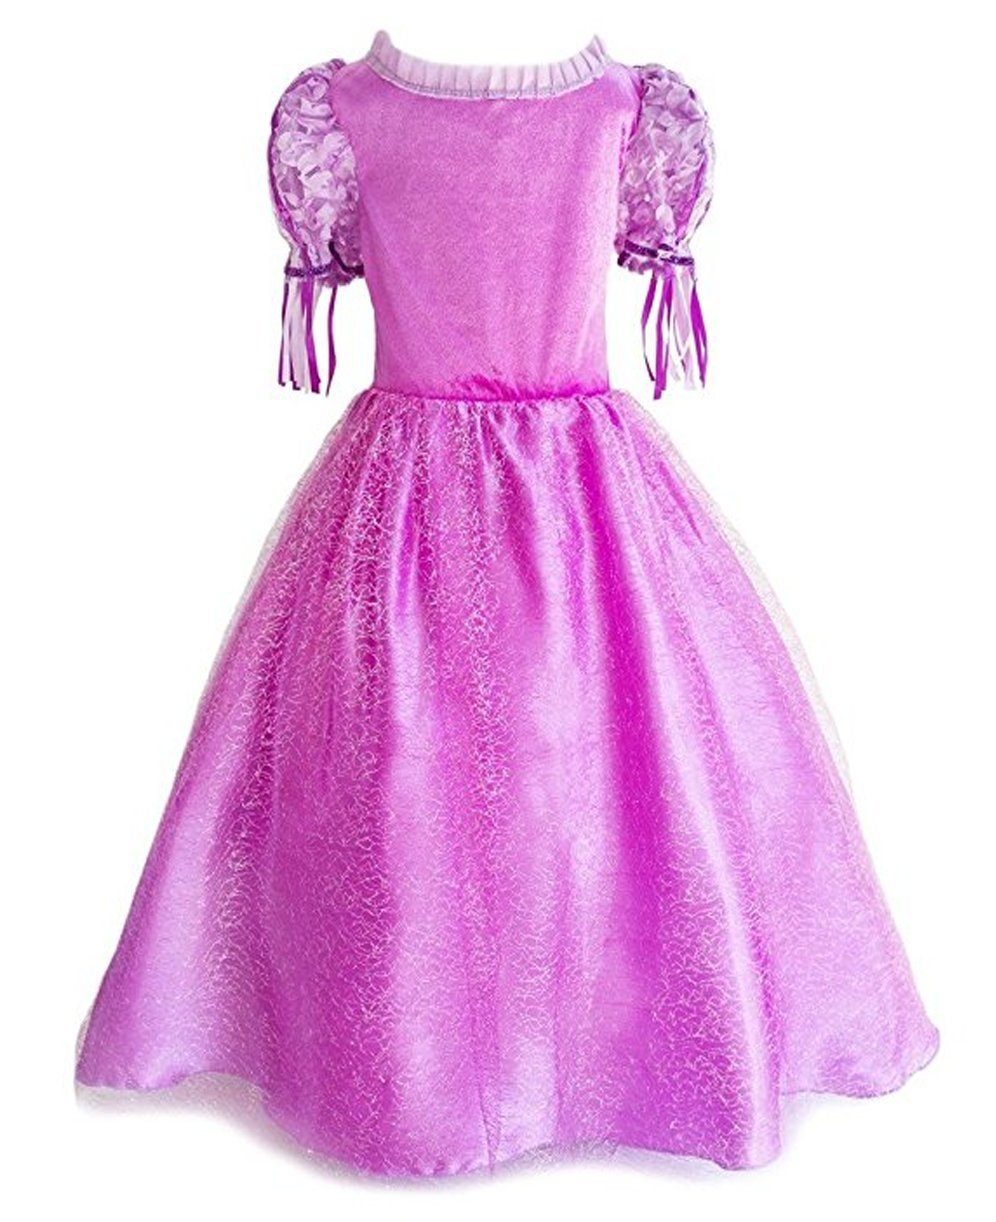 SweetNicole Princess Rapunzel Purple Princess Party Costume Dress with Accessories (7-8) by SweetNicole (Image #2)